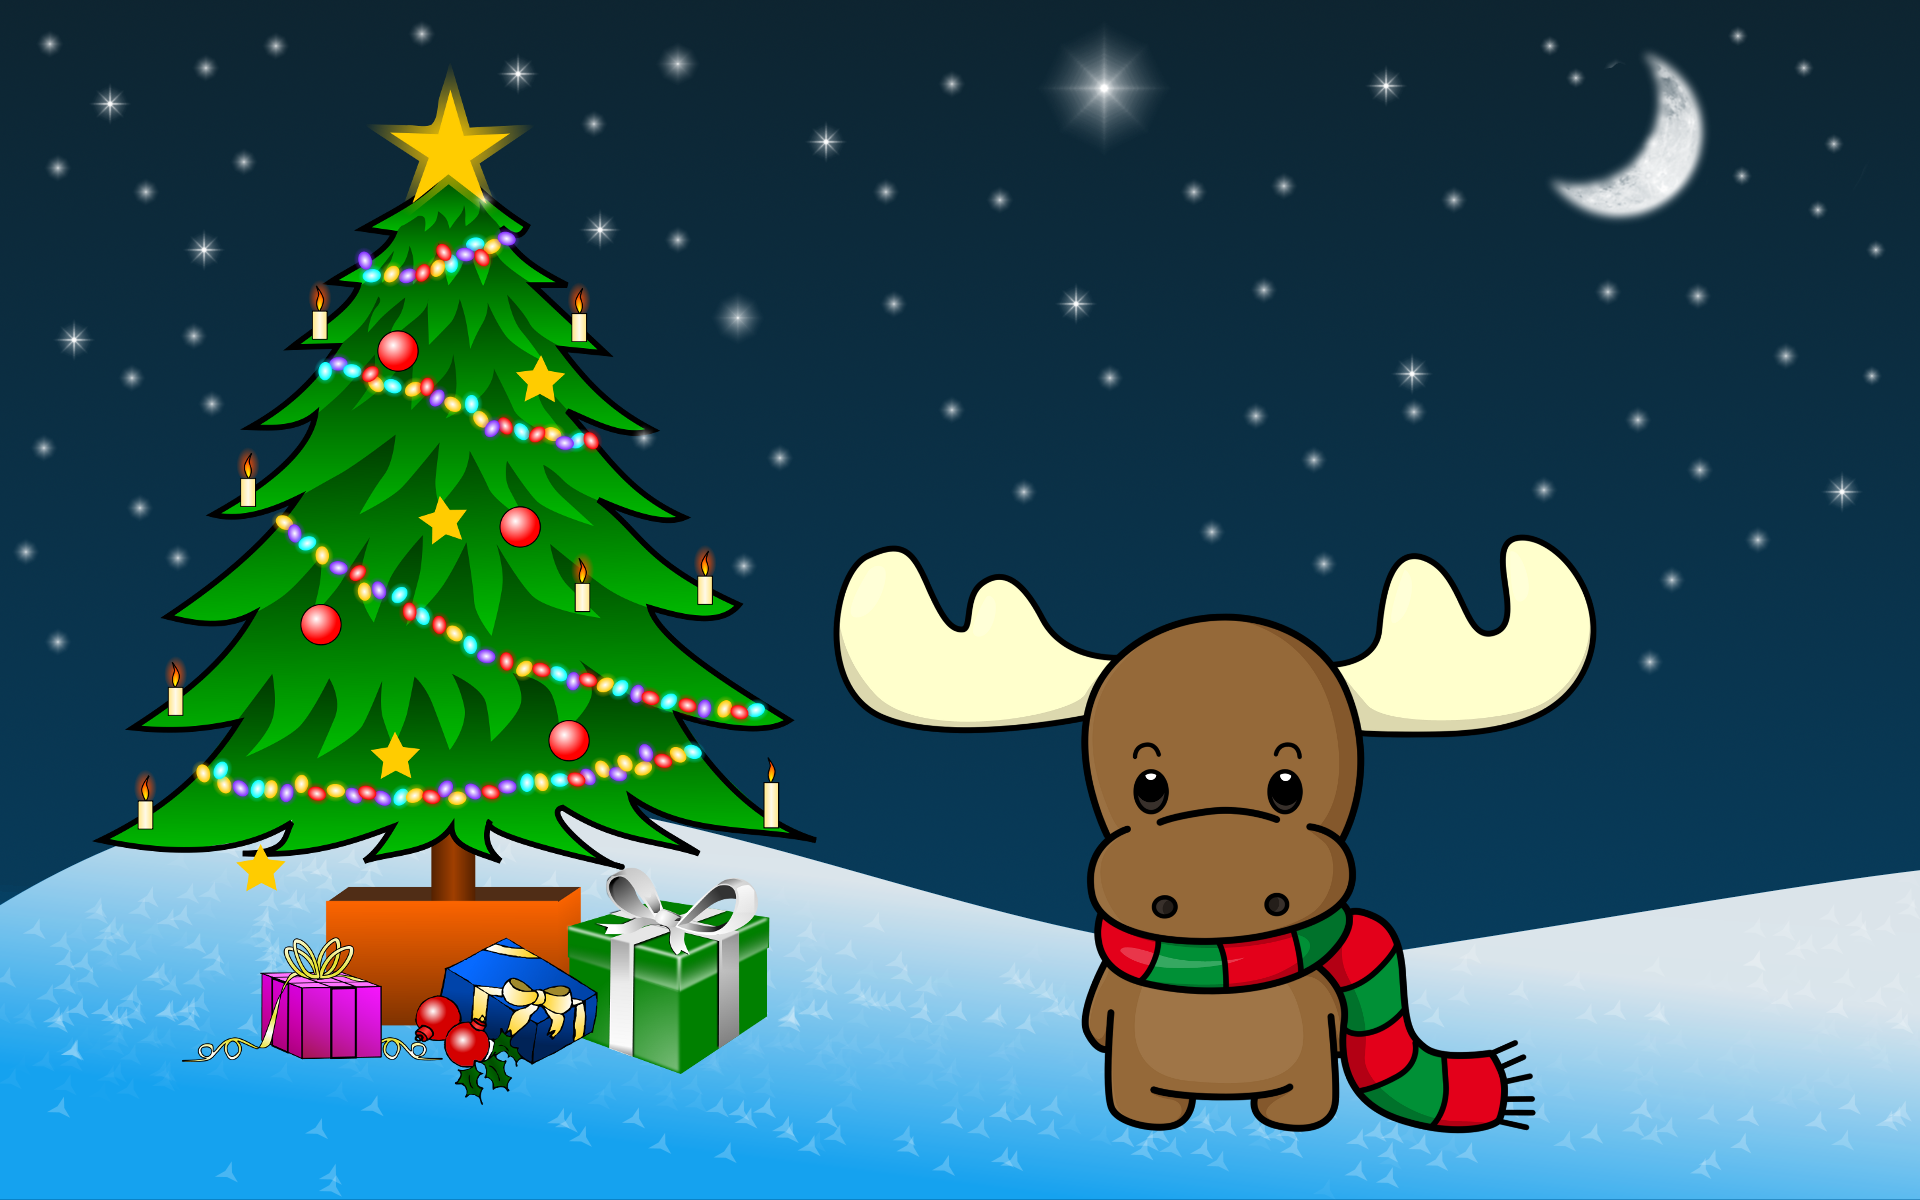 Cute Christmas Wallpaper Images amp Pictures   Becuo 1920x1200